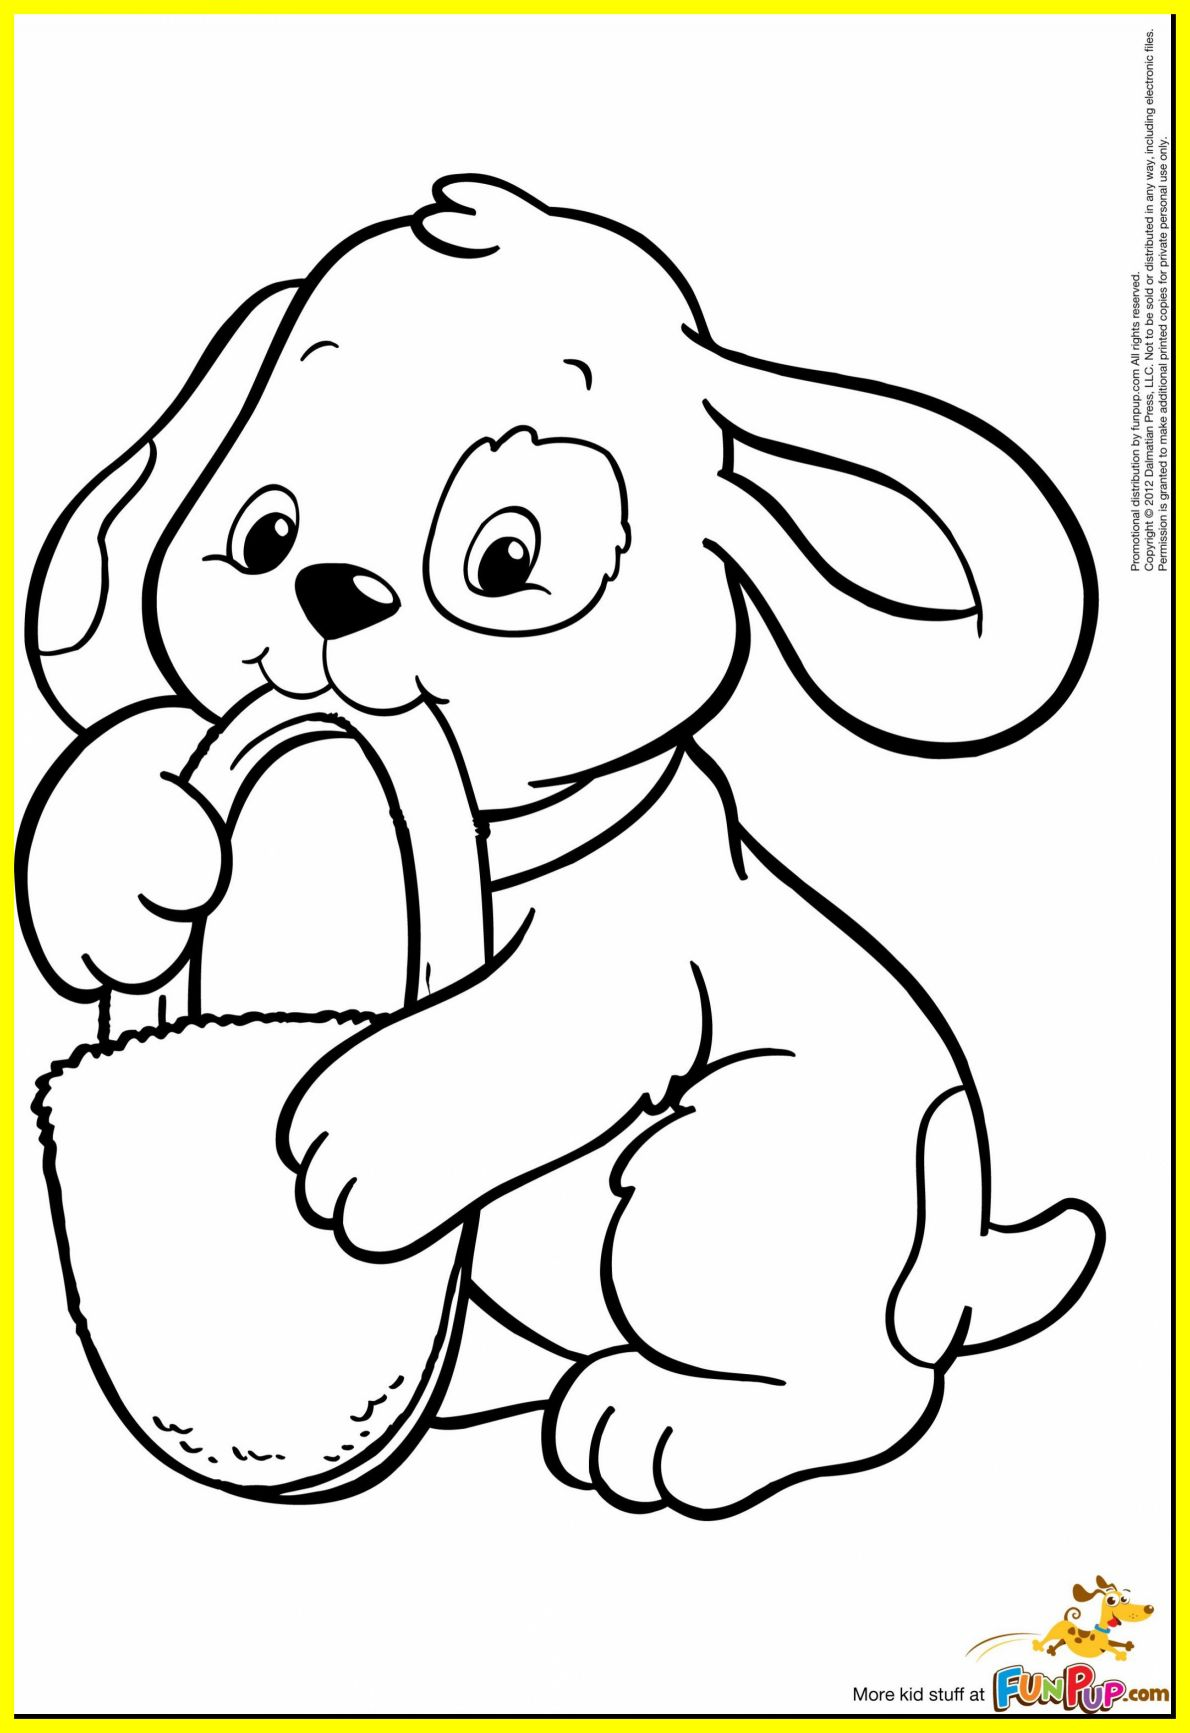 Easter Puppy Coloring Pages at GetDrawings | Free download